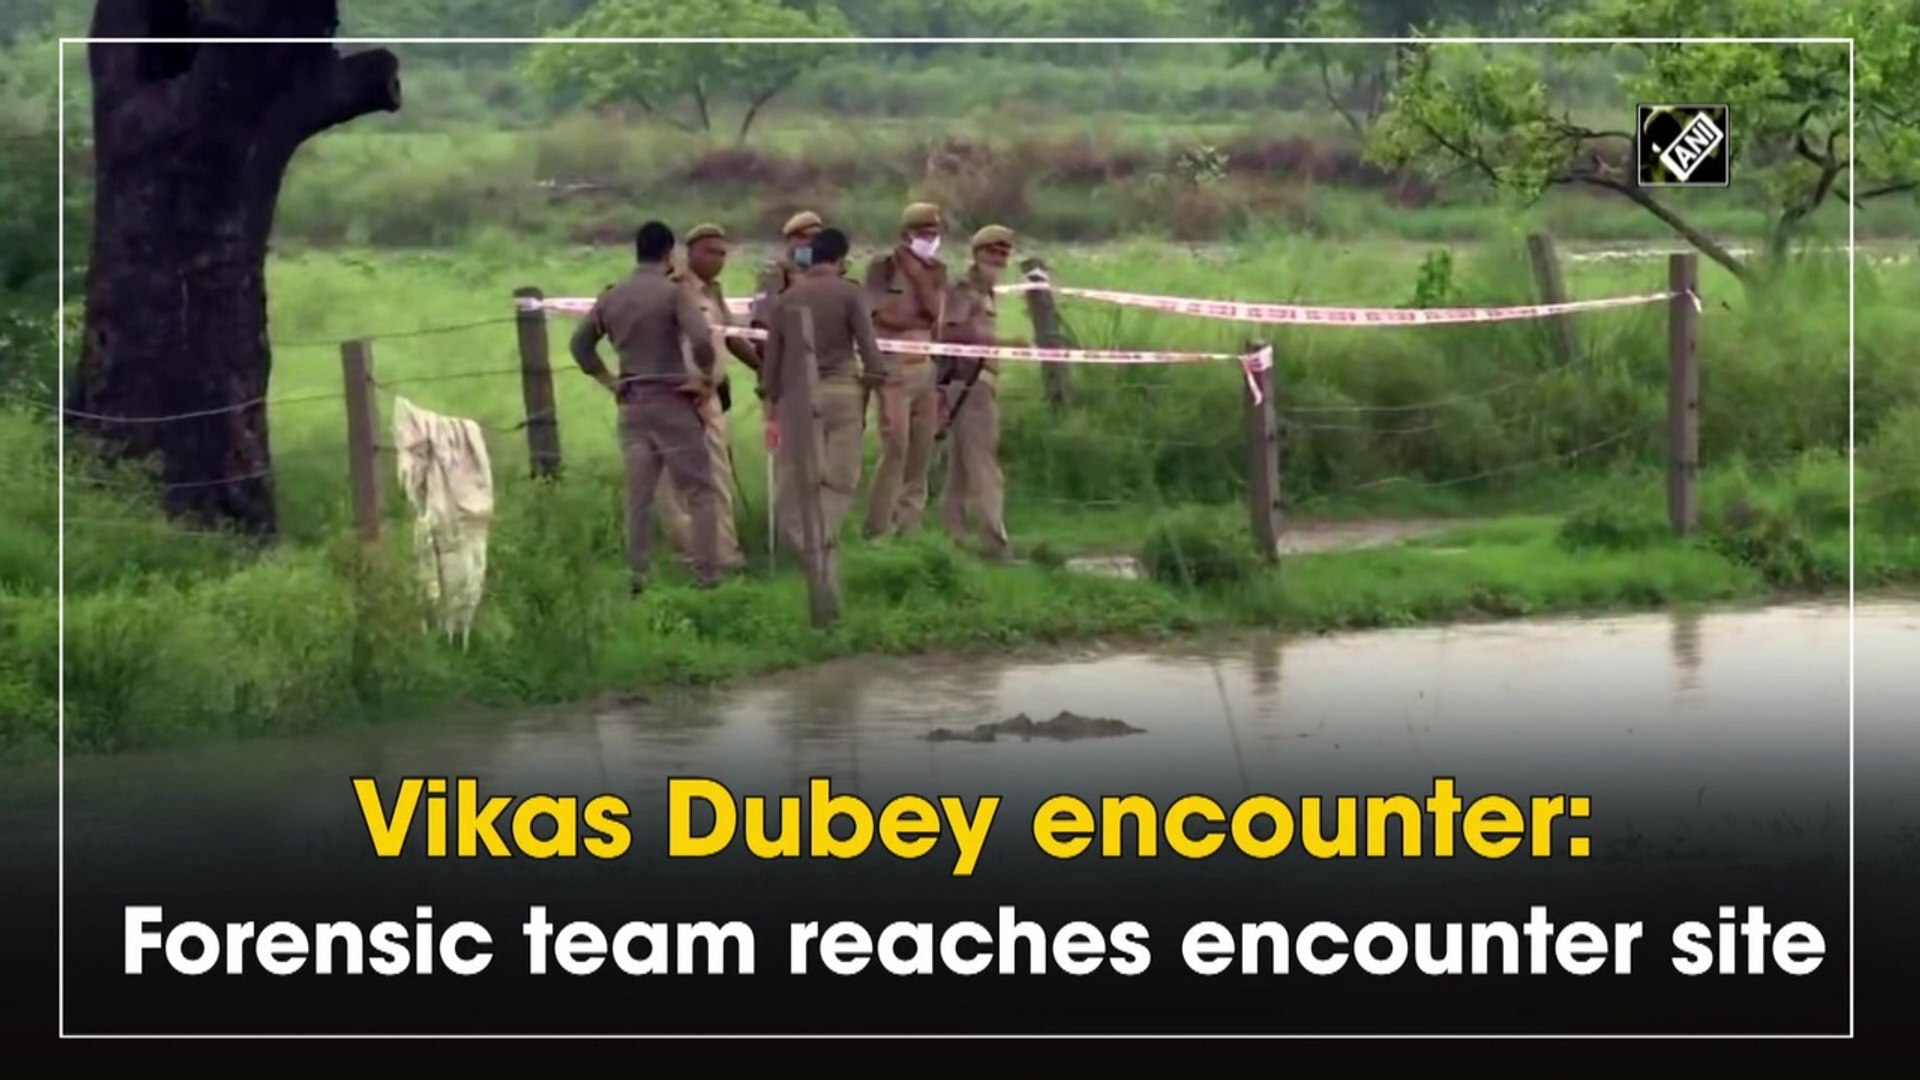 Vikas Dubey encounter: Forensic team reaches encounter site